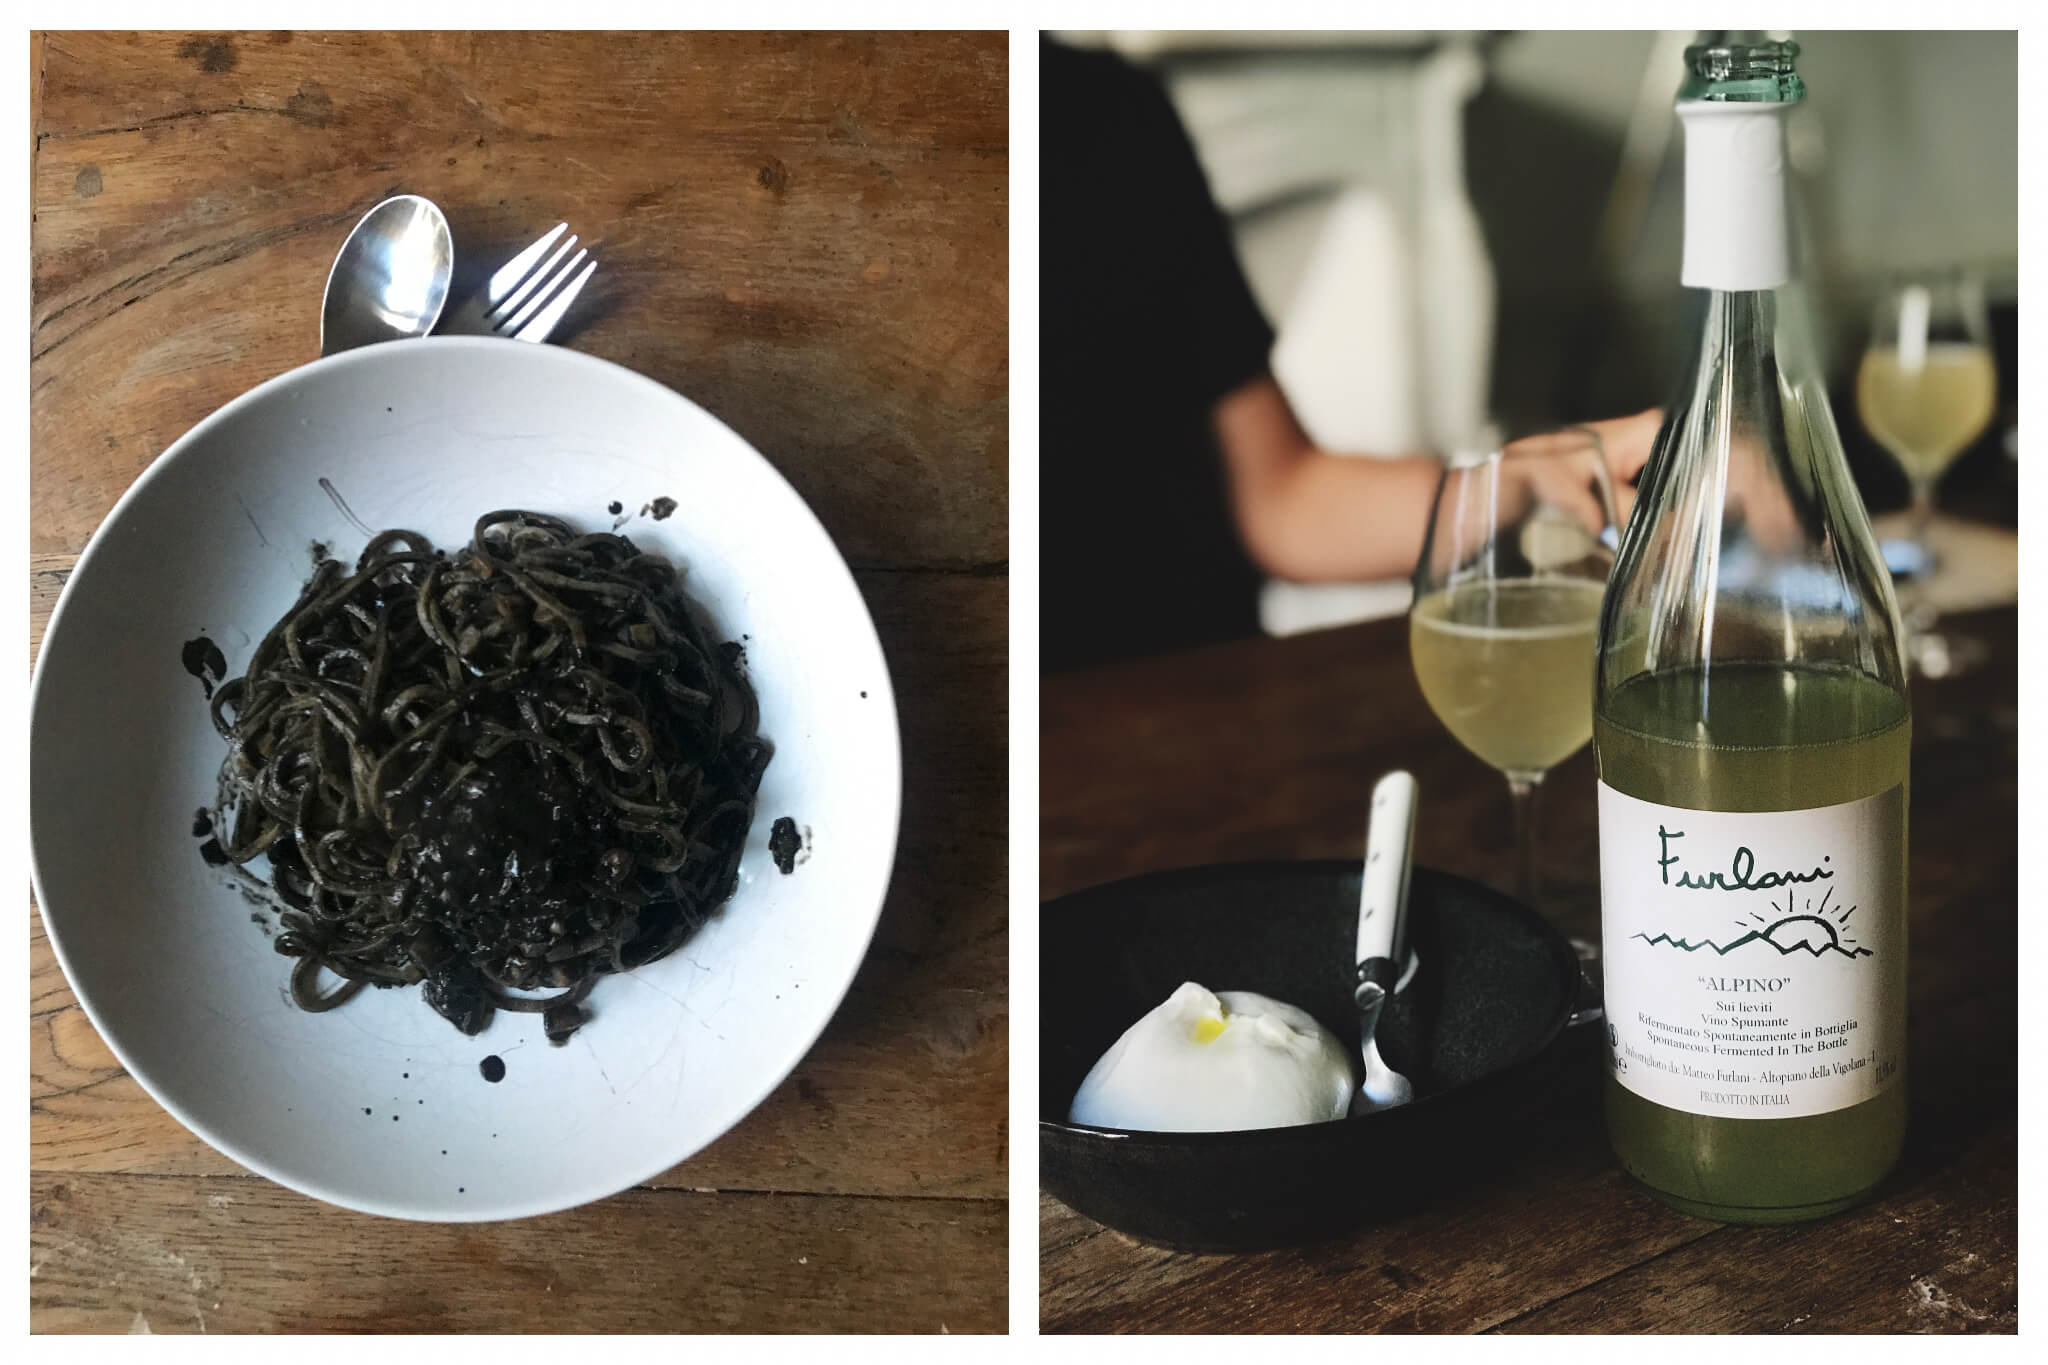 Left: squid ink pasta in a white plate on a timber table. Right: a ball of mozzarella and a bottle of white whine from Passerini.